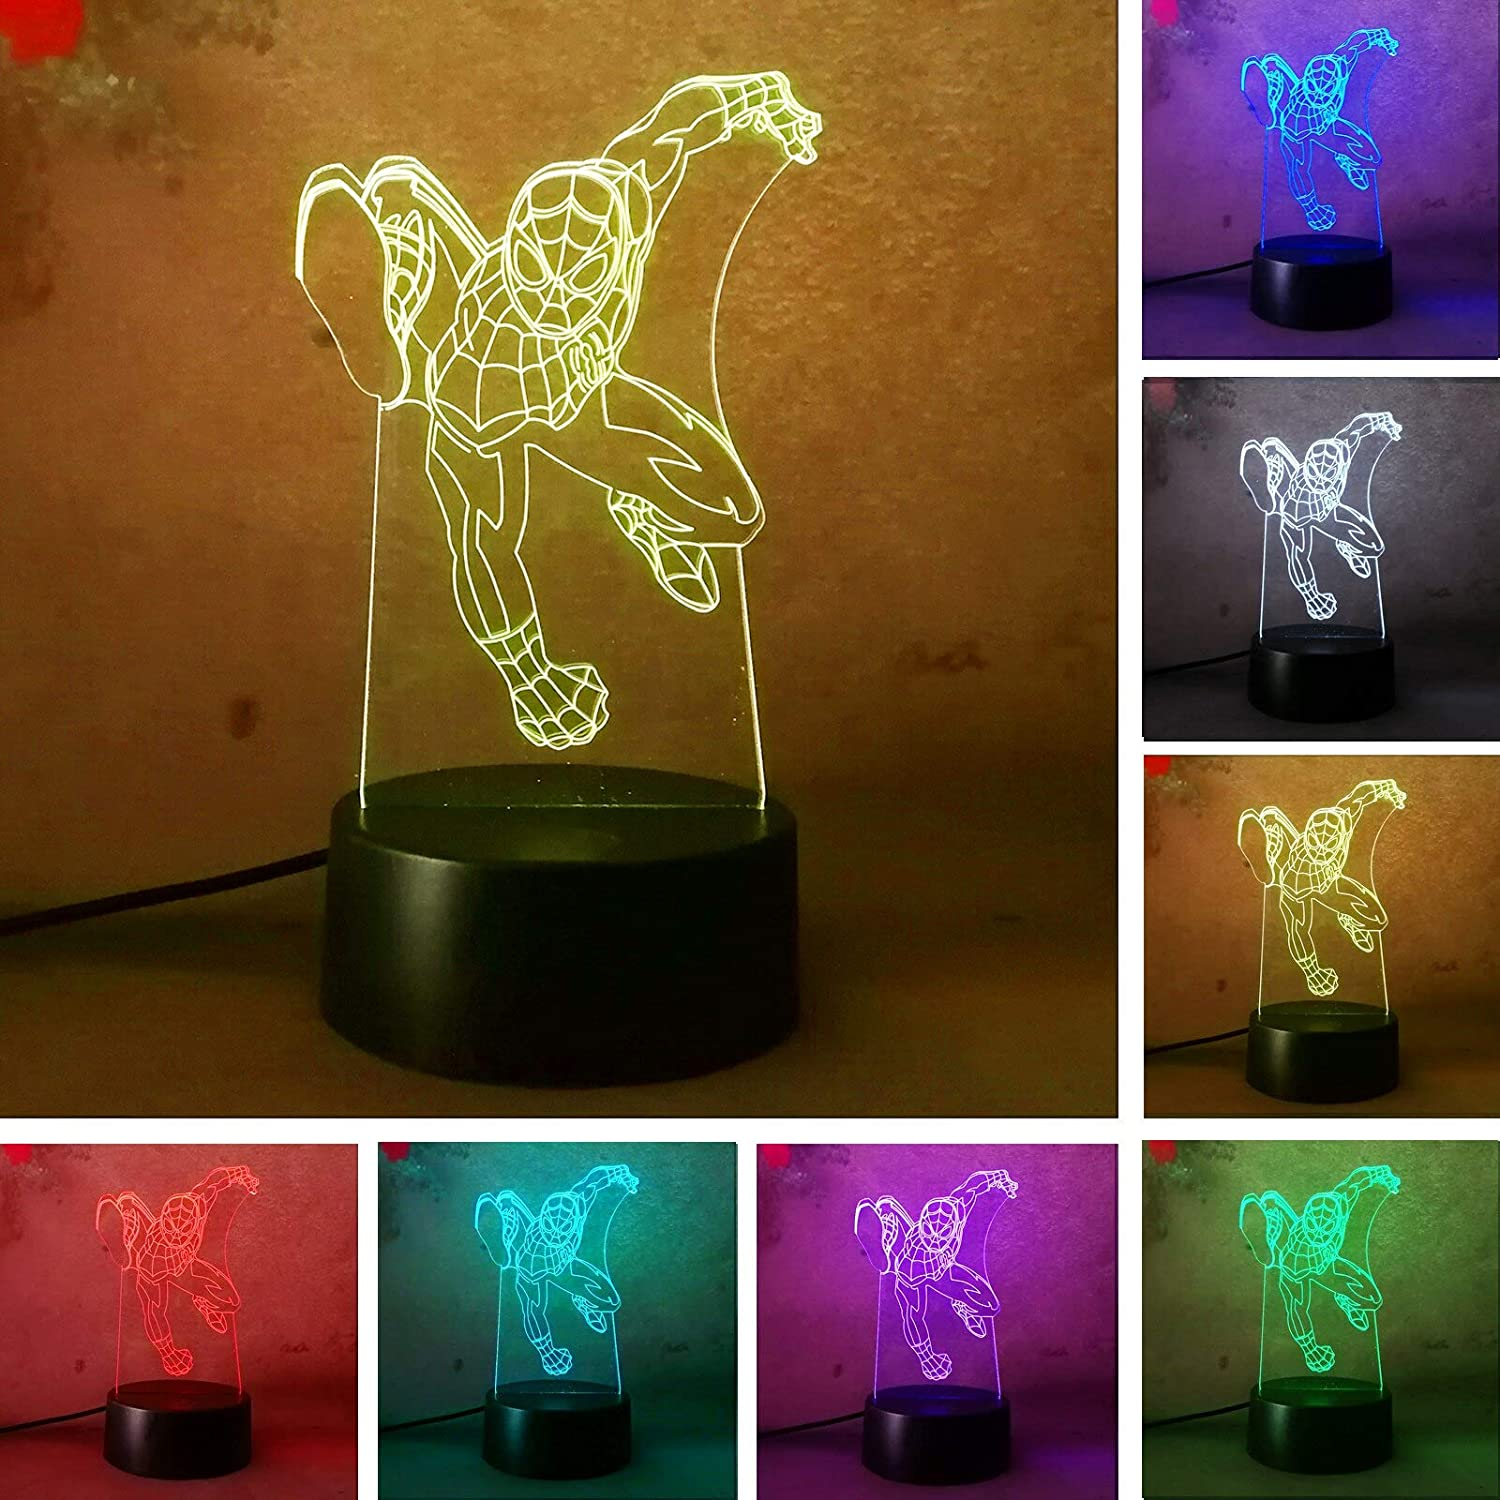 Man 3d Led Night Light Usb 7 Color Touch Senser Boy Toy Smart Table Illusion Mood Dimming Lamp Action Figure Amazon Co Uk Lighting We've done buying guides on controllers before, but we've never had one place that explained all of them until now. amazon co uk